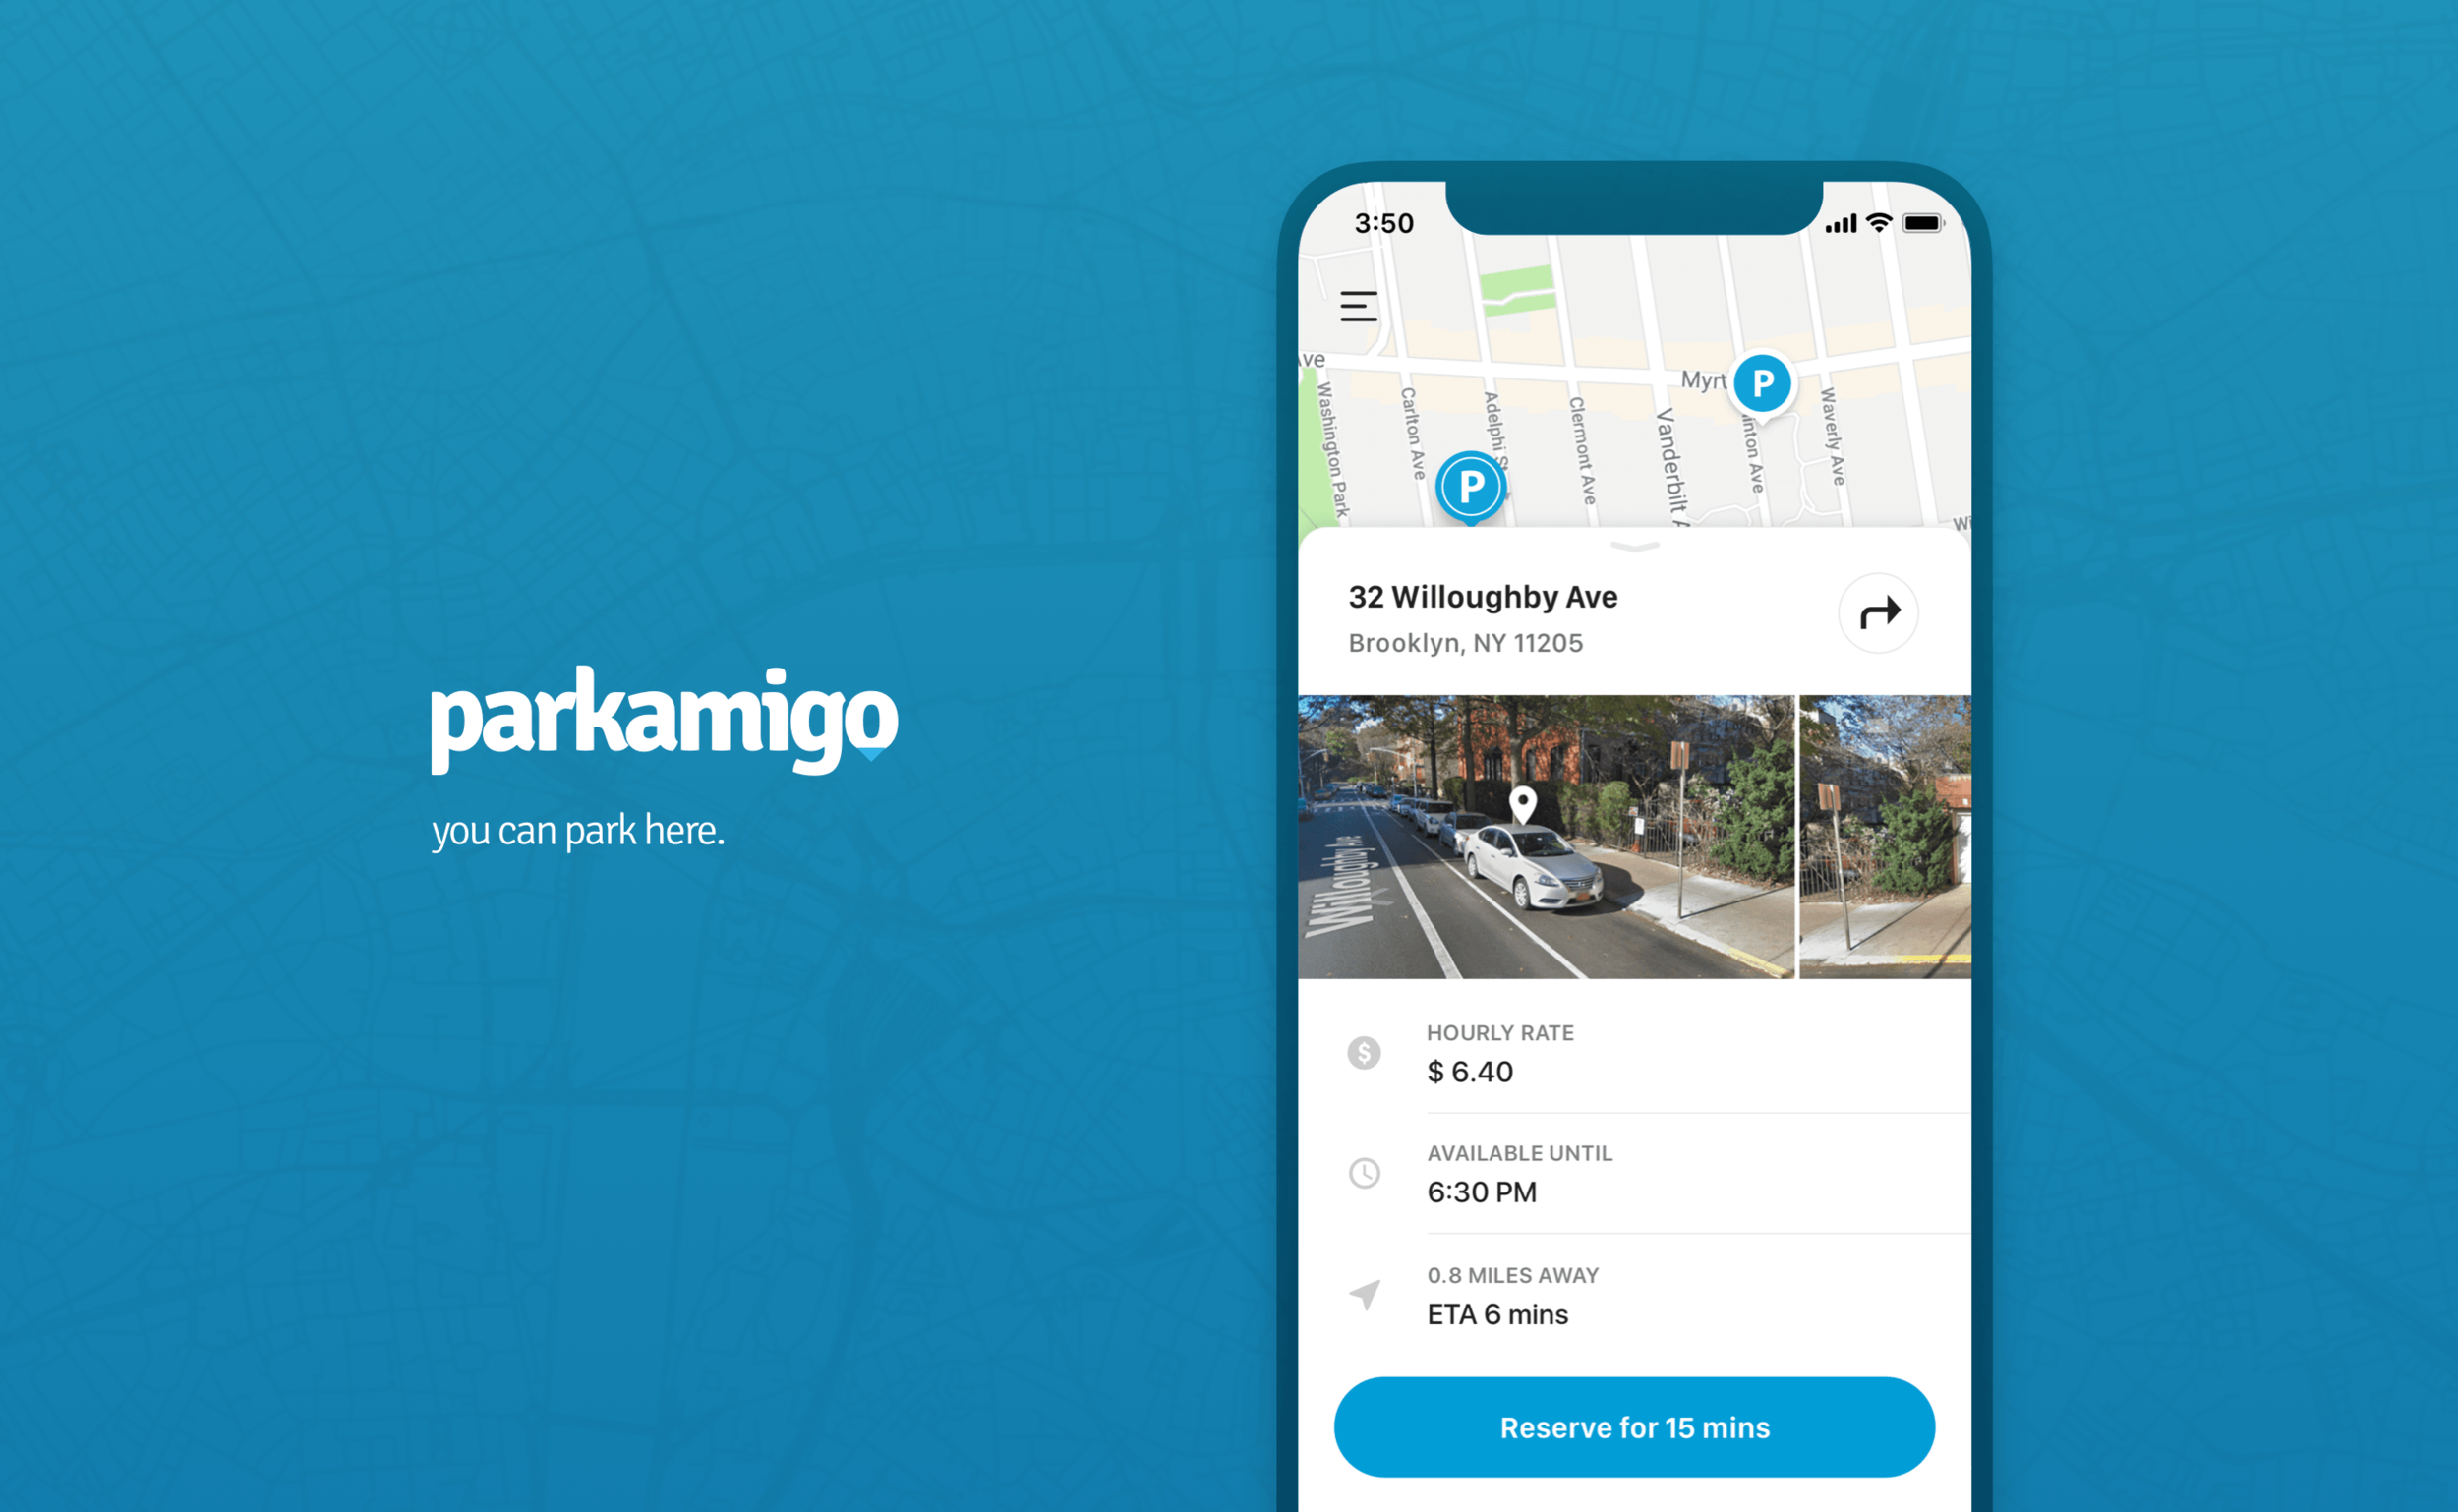 ParkAmigo - Redesigning how to find parking with the driveway sharing platformCase Study